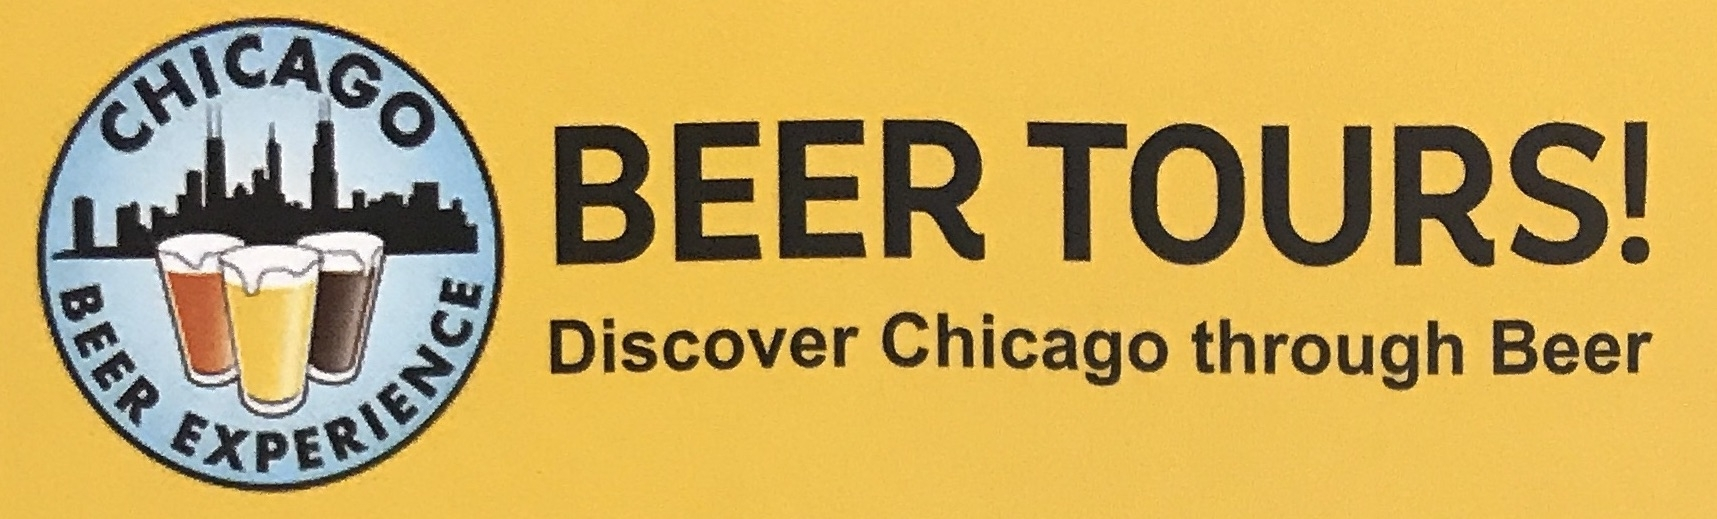 Discover Chicago Beer Tours Information